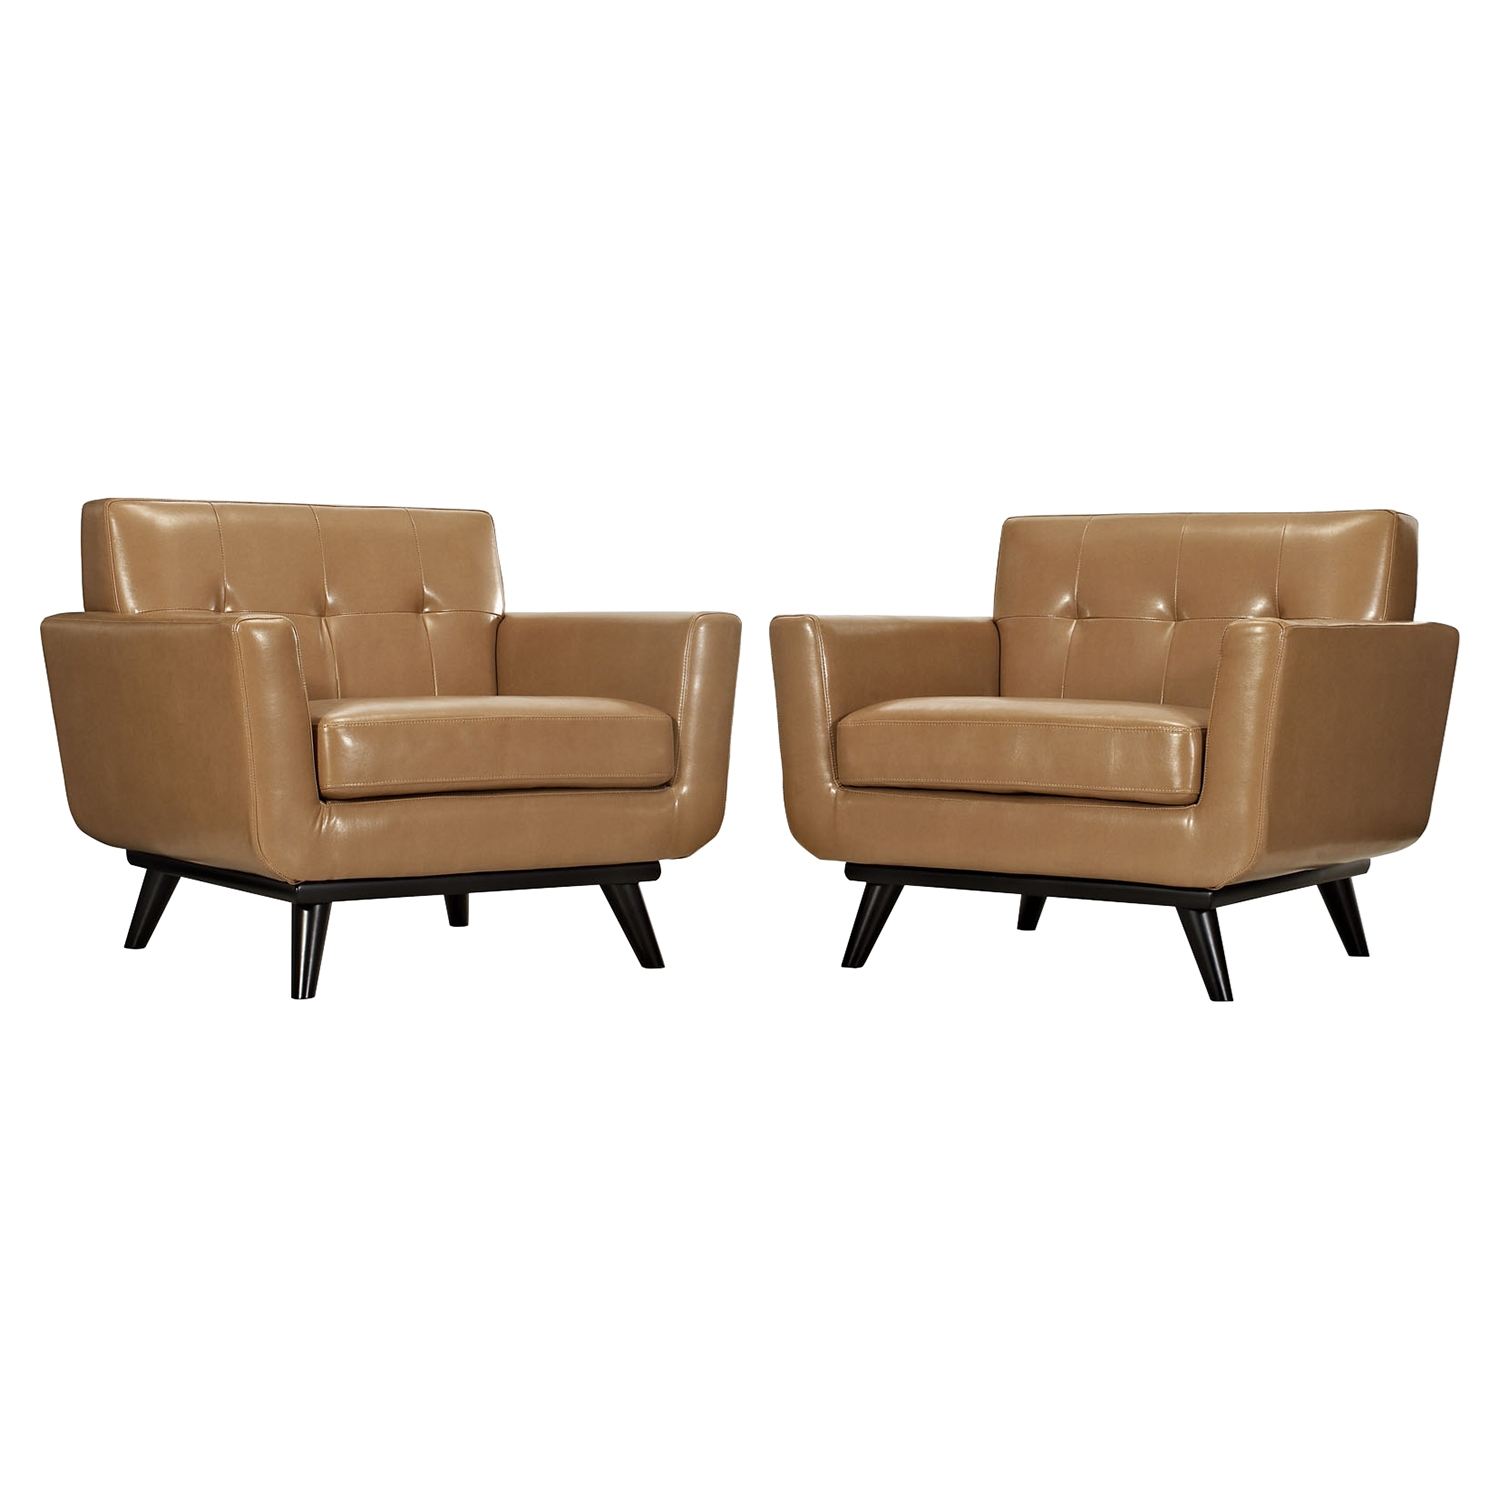 Engage Leather Armchair - Tufted, Tan (Set of 2) - EEI-1665-TAN-SET